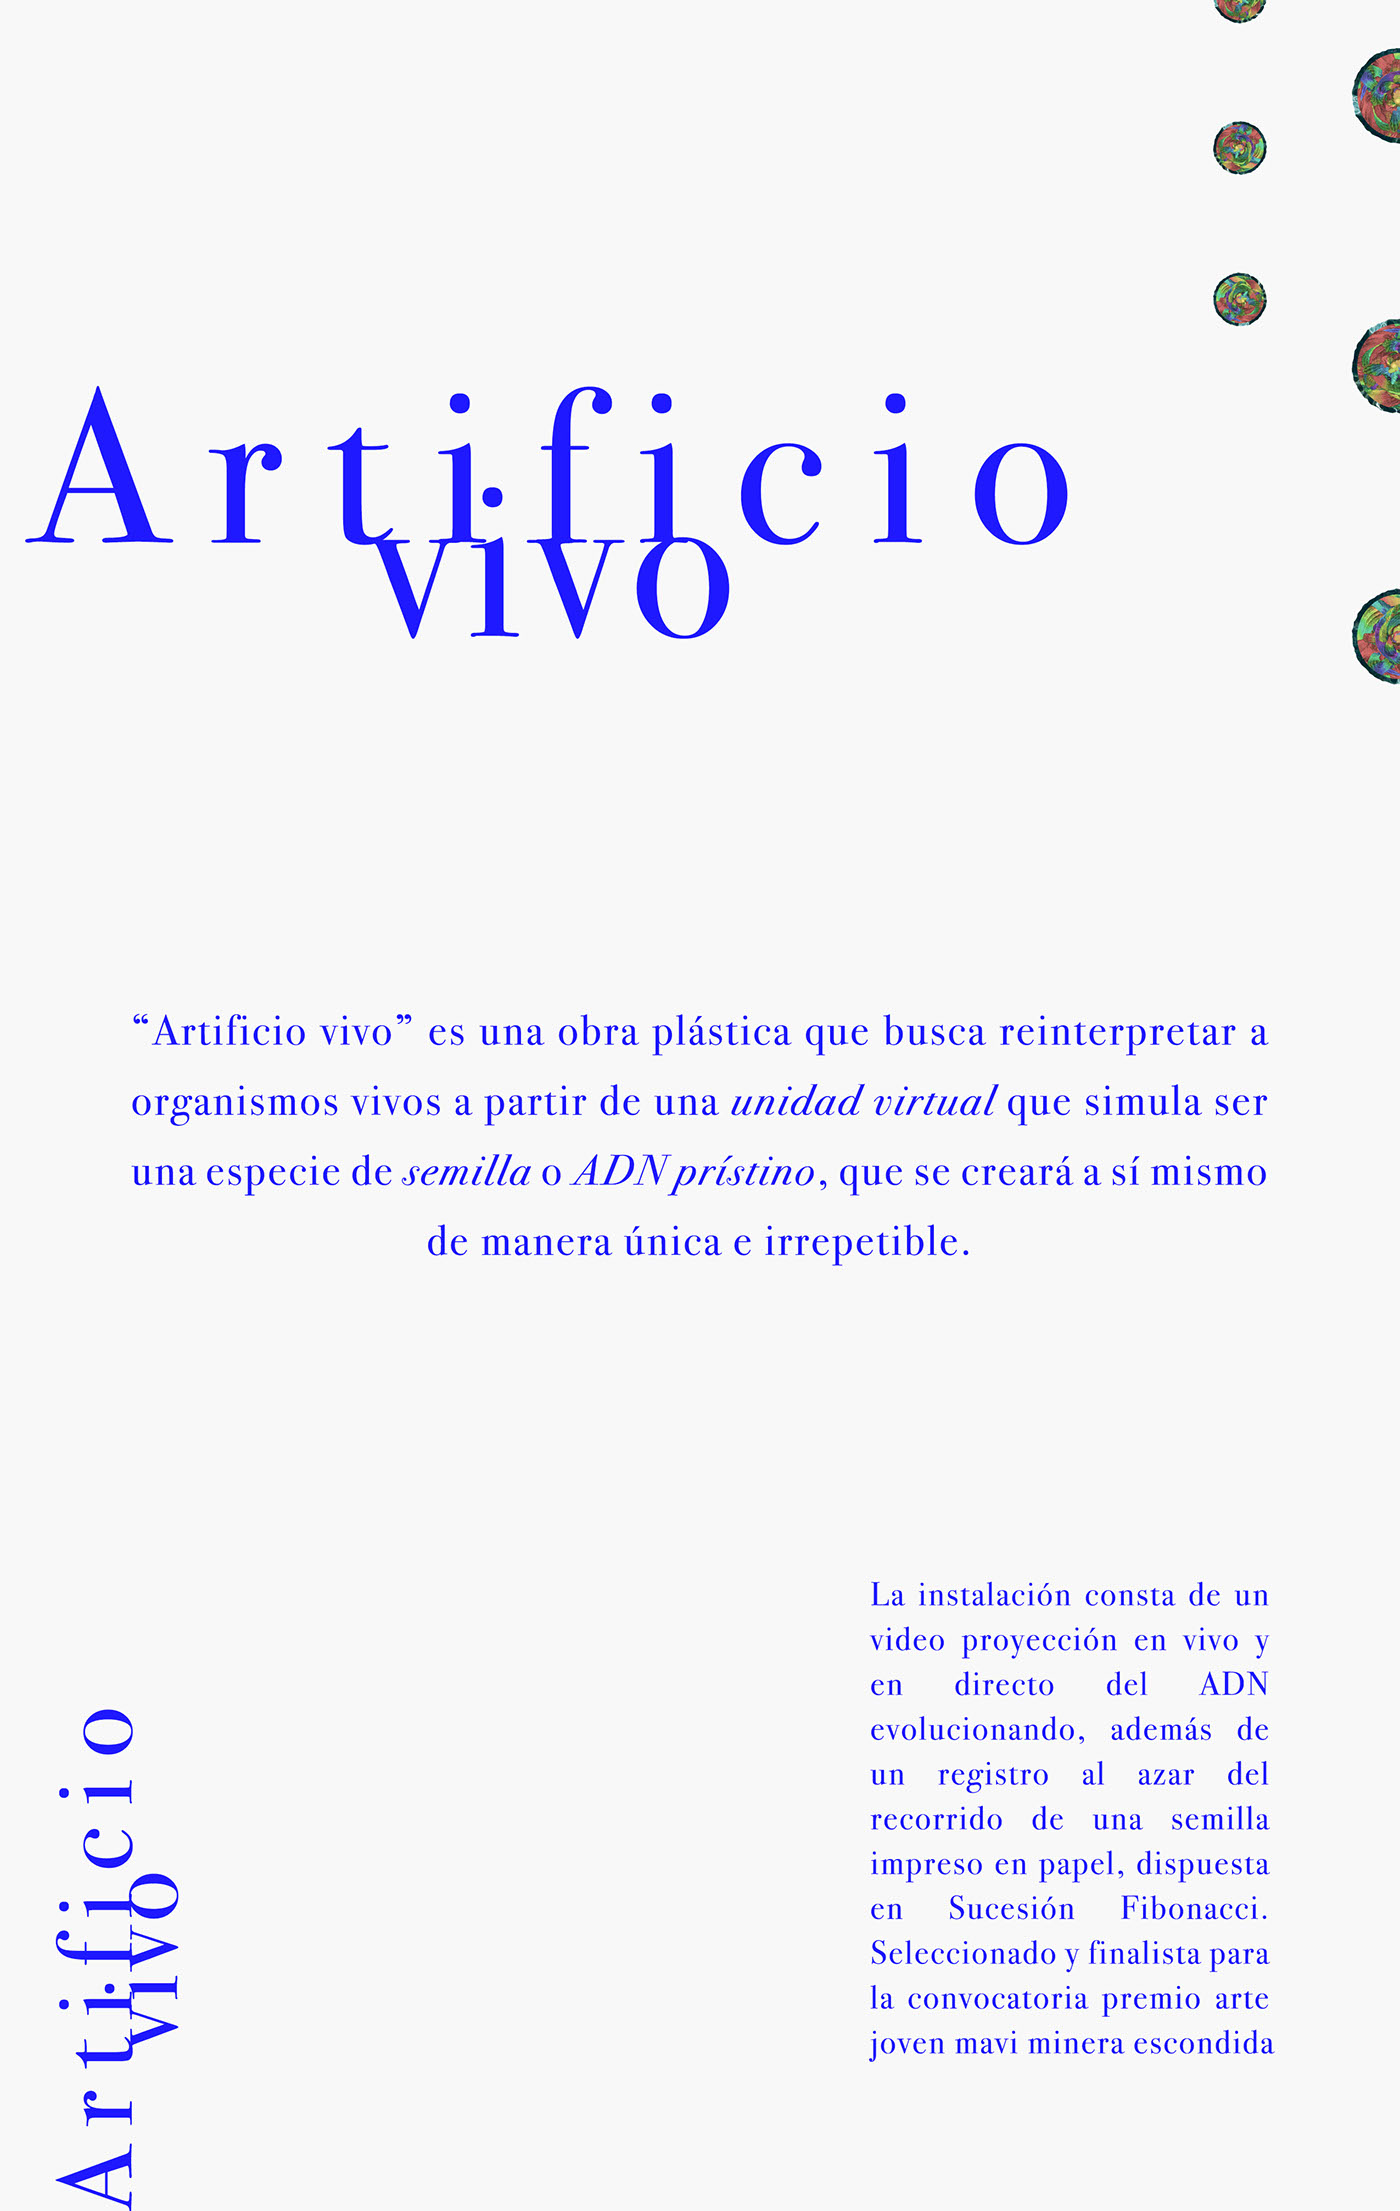 Artificio vivo